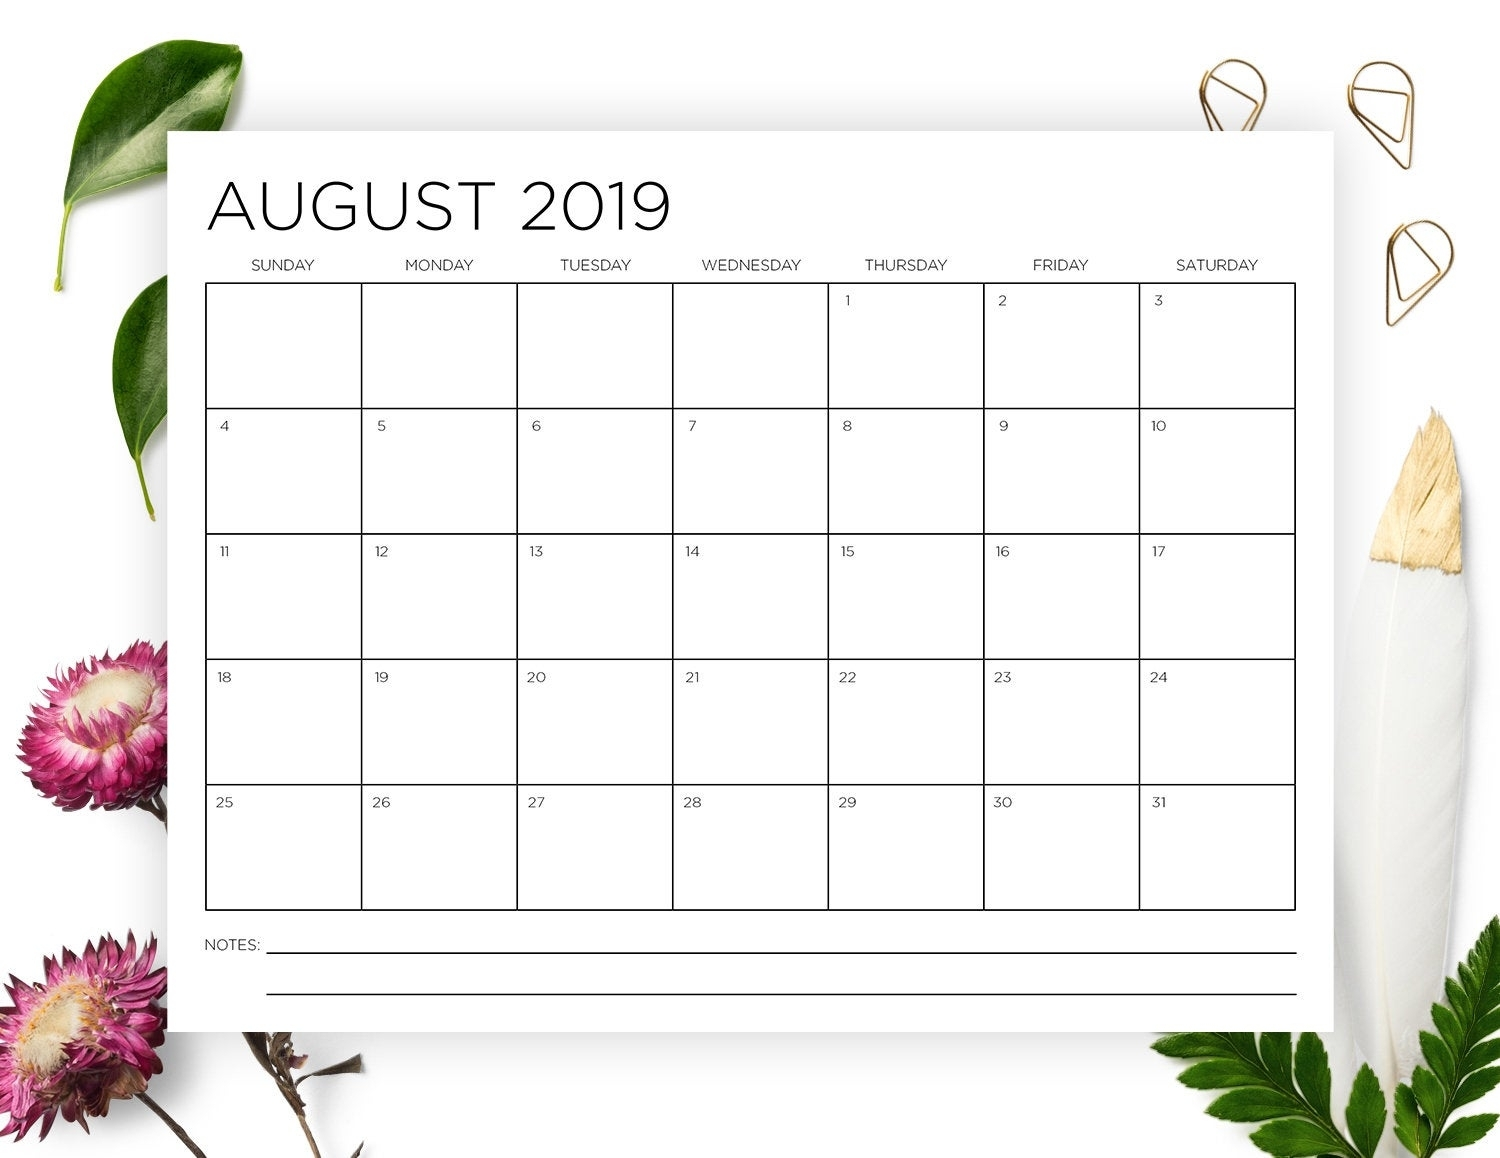 8.5 X 11 Inch 2019-2020 Calendar Template Instant Download | Etsy throughout 2020 Calendar 8.5 X 11